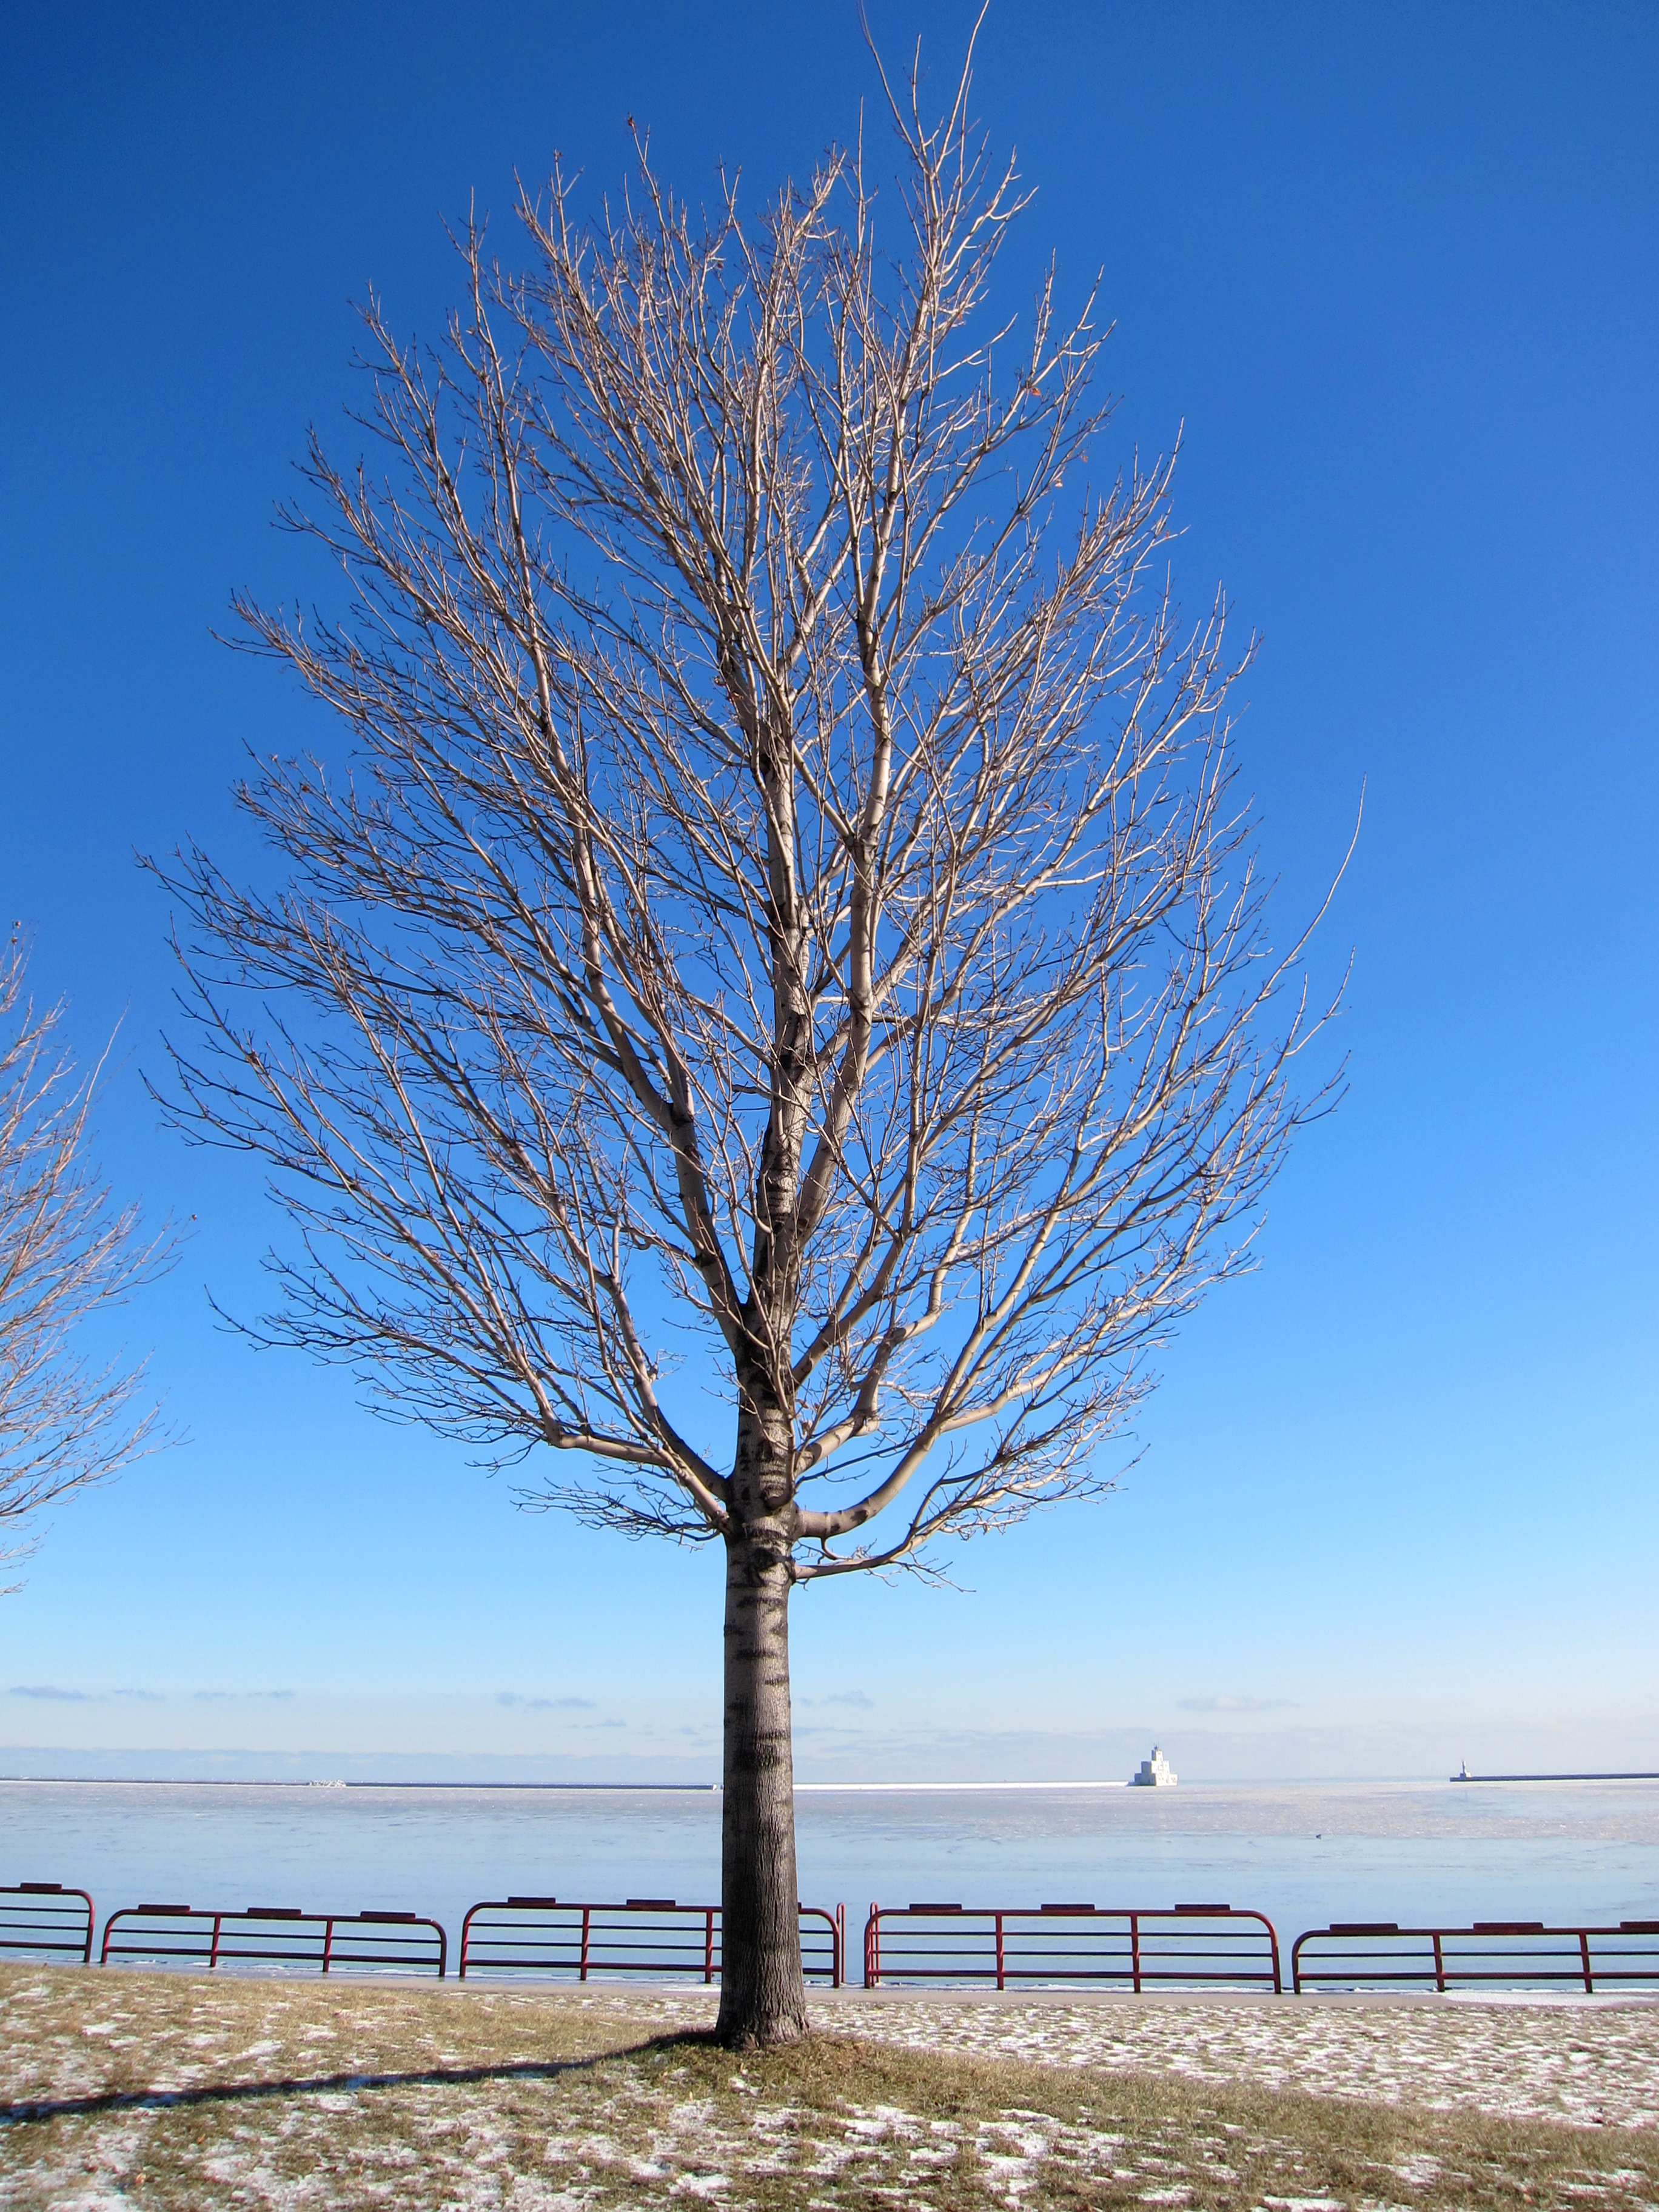 Bare Trees, Bare, Branches, Cold, Freeze, HQ Photo